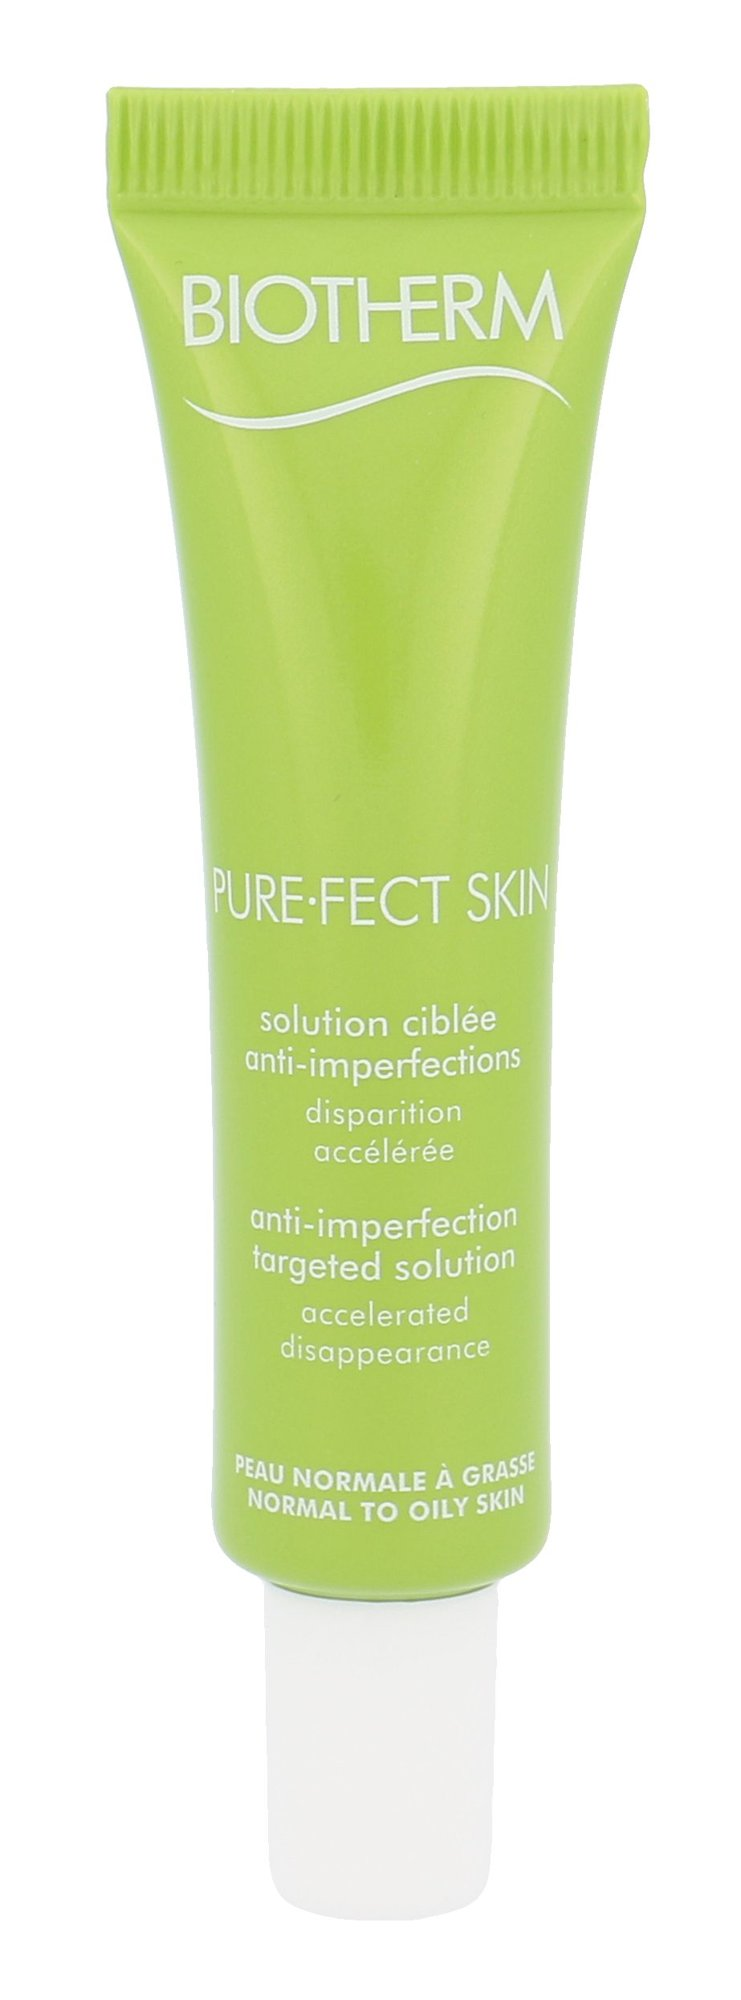 Biotherm PureFect Skin Cosmetic 15ml  Targeted Solution